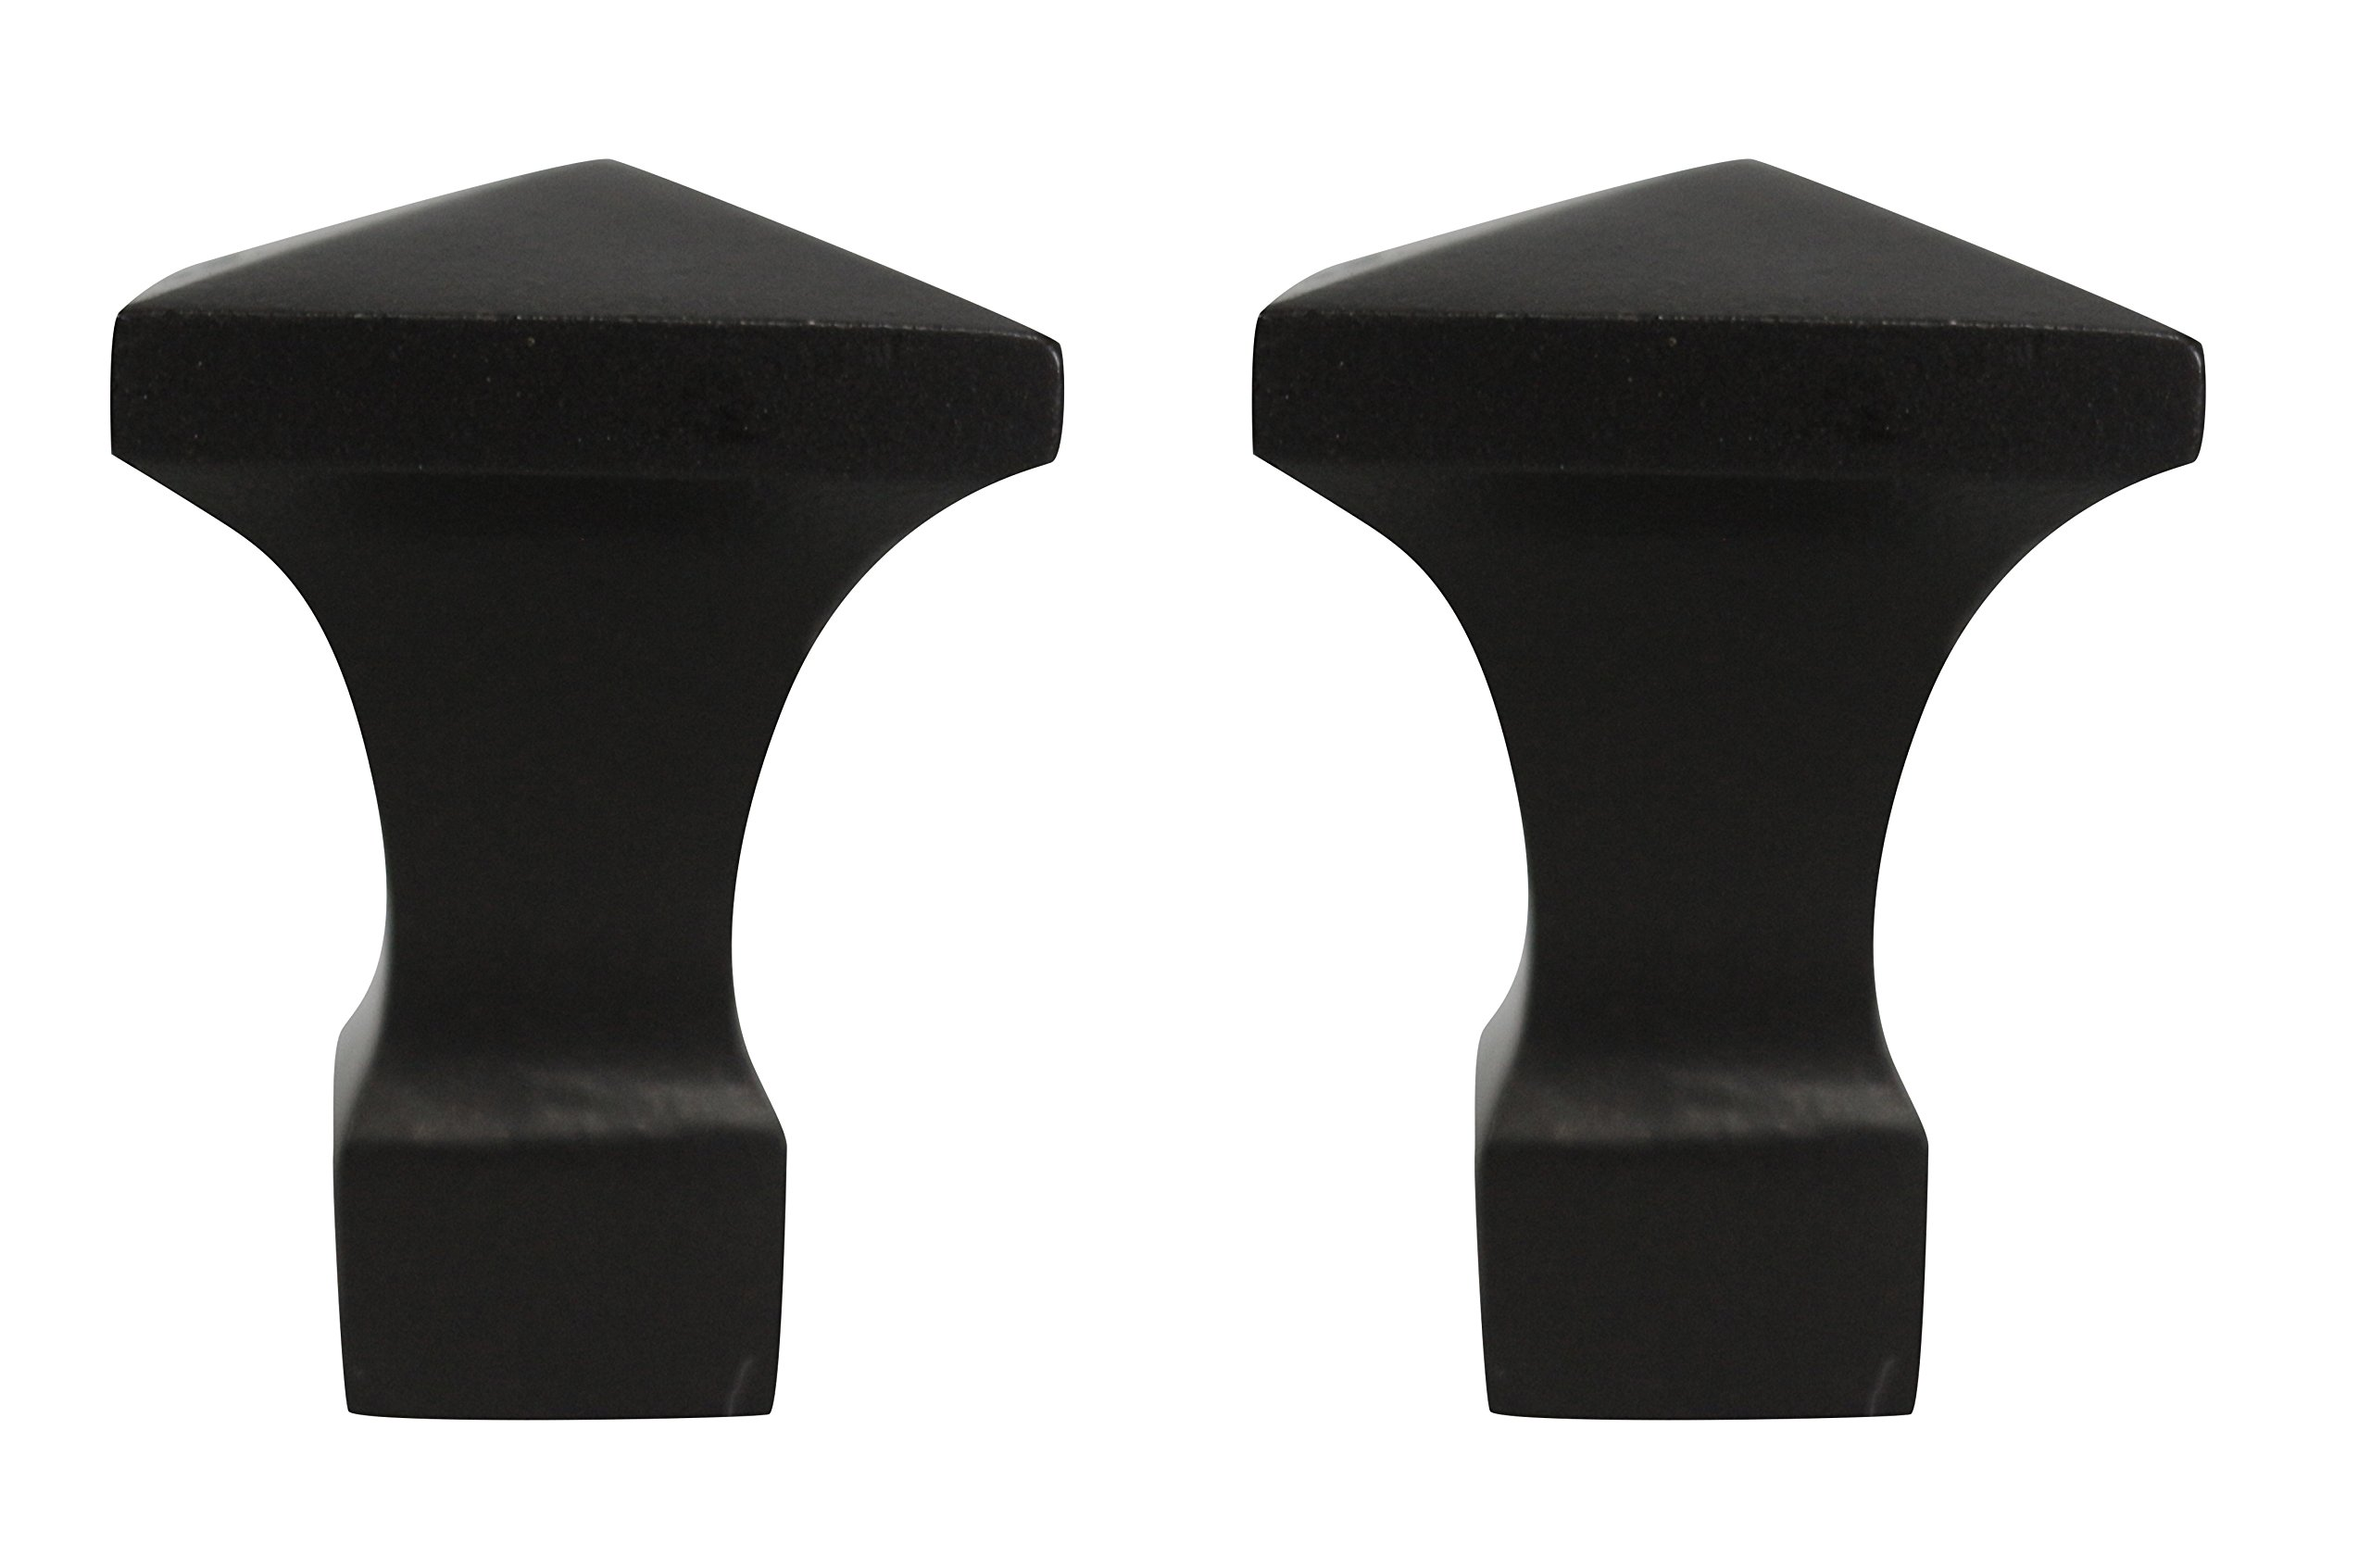 Urbanest Set of 2 Semoy Finial, 1 7/8-inch Tall, Oil-Rubbed Bronze